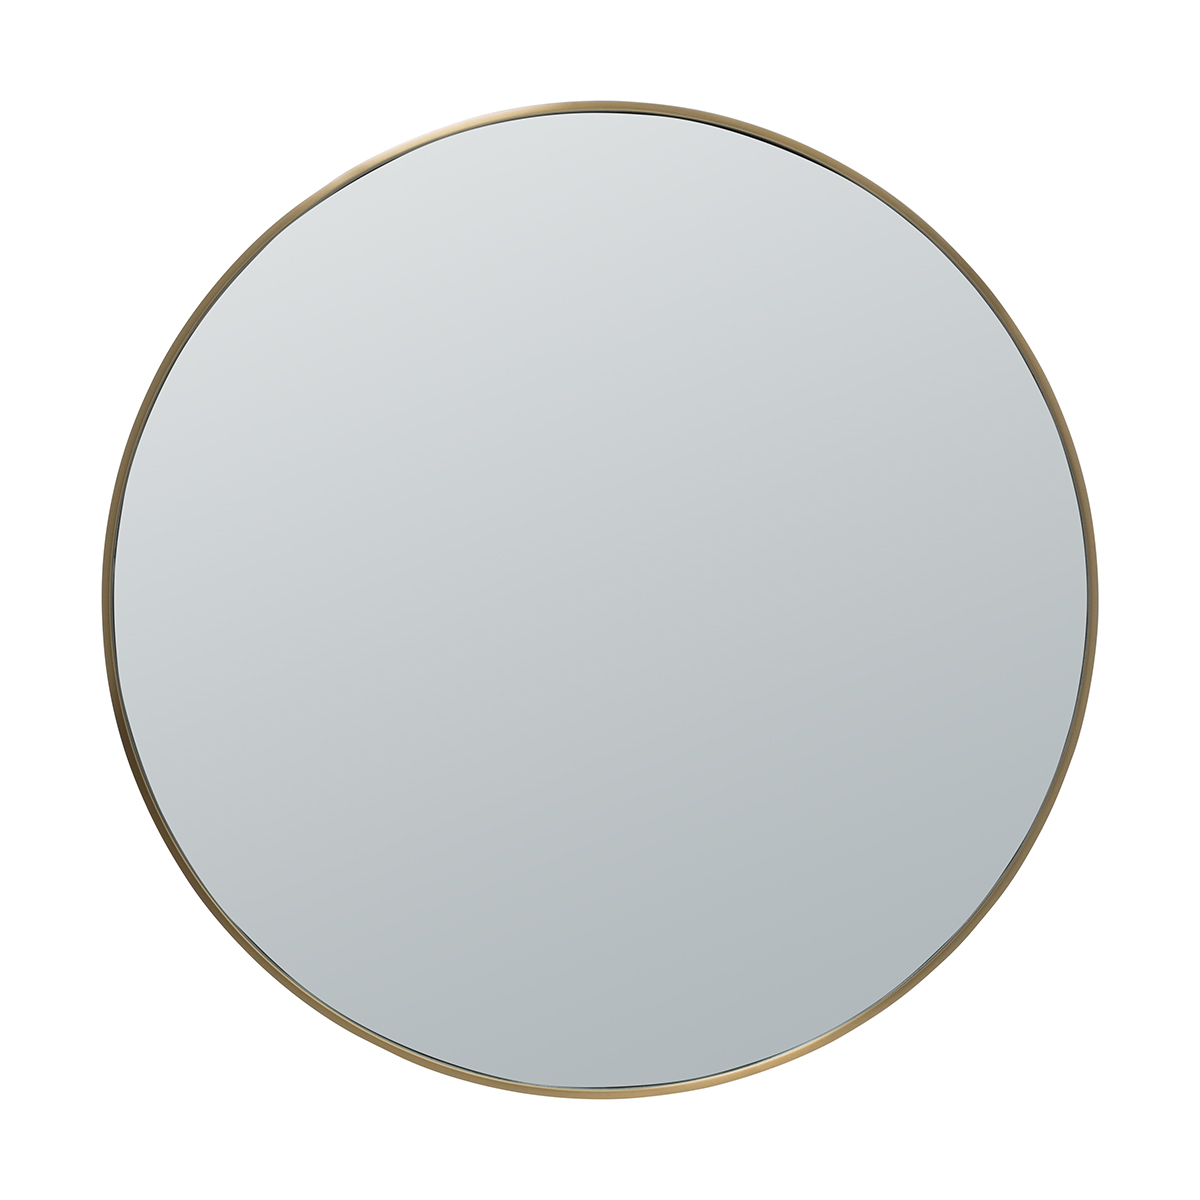 Ben Round Mirror 100cm in Brass by OzDesignFurniture, a Mirrors for sale on Style Sourcebook